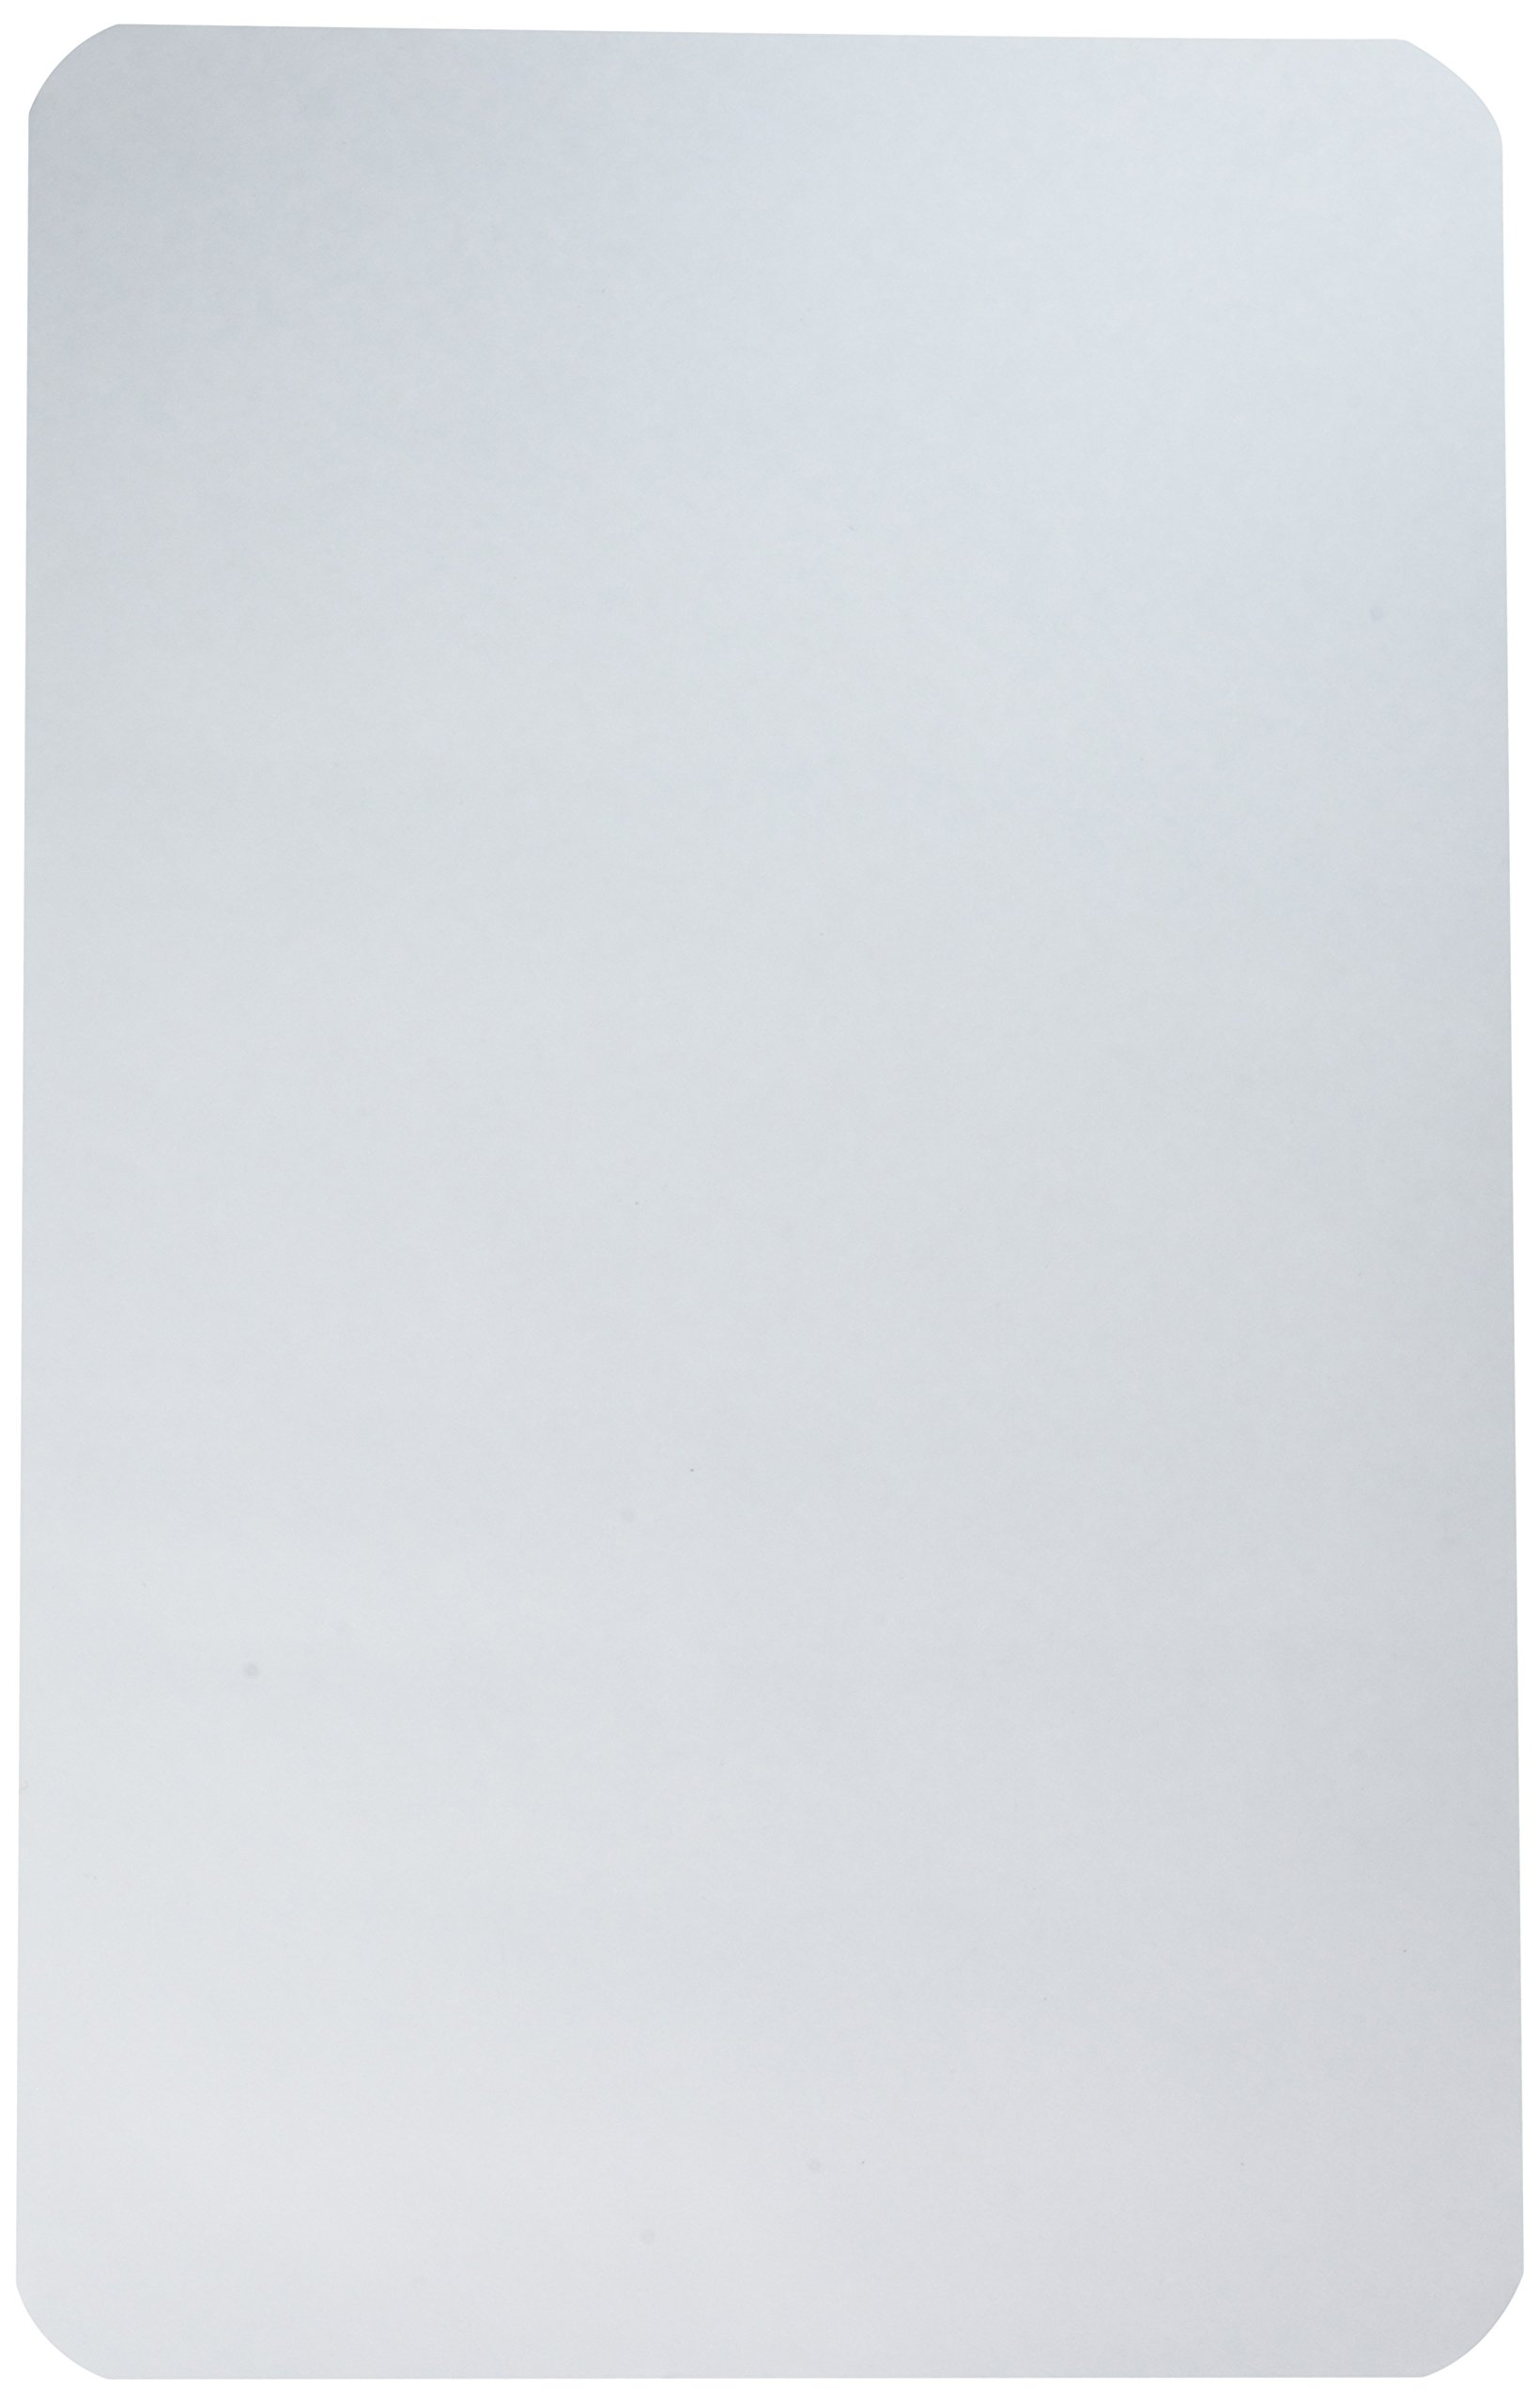 Medicom 5597 Dental Tray Cover, Paper Stock, 11'' x 17-1/2'' Size, White (Pack of 1000)